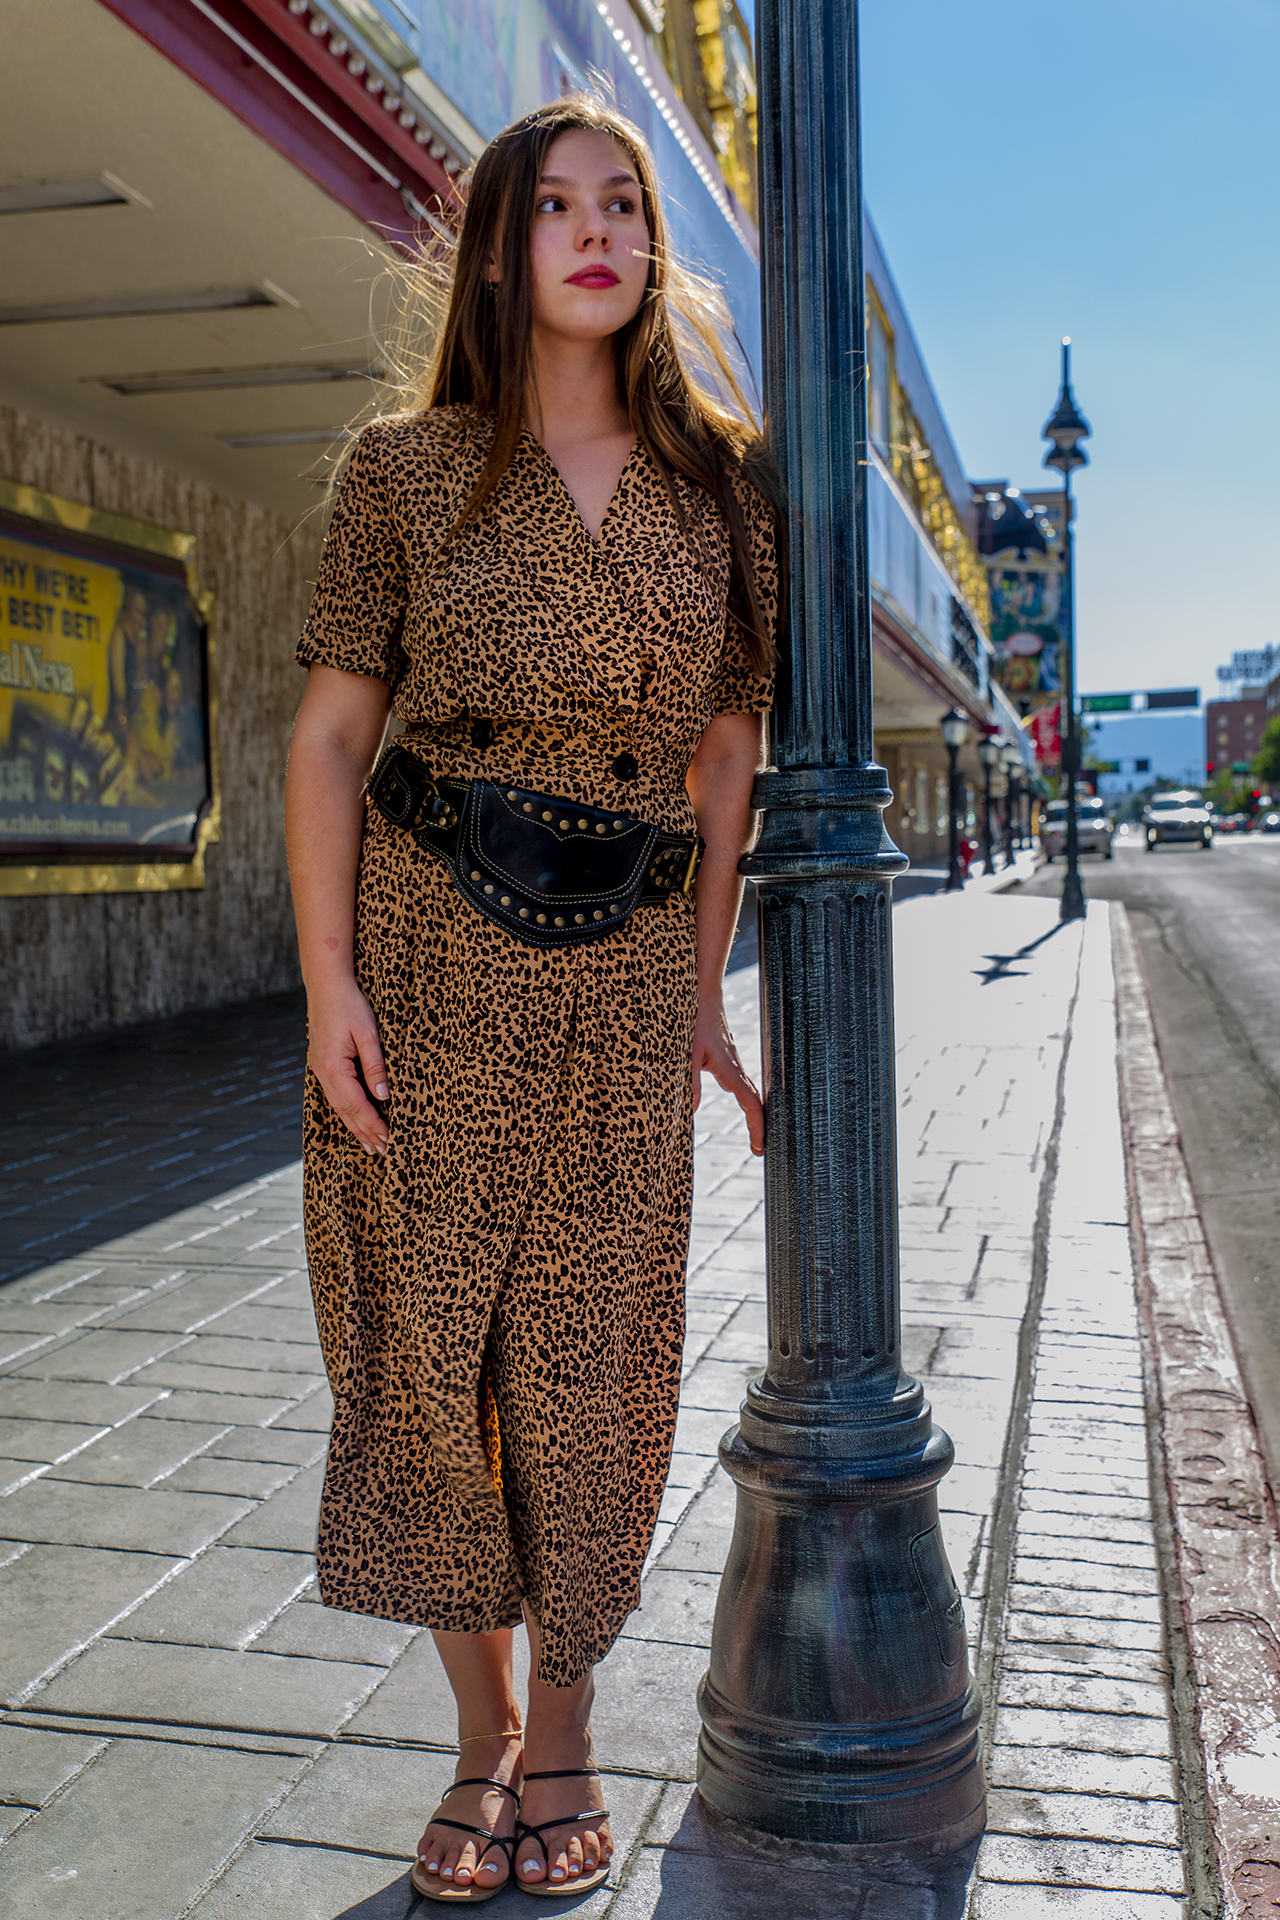 Vintage Urban Safari - The Black Leather Sycamore Style Belt paired with vintage 80s silk leopard print dress.Shot in Reno, NVDress available at Lovingood Vintage